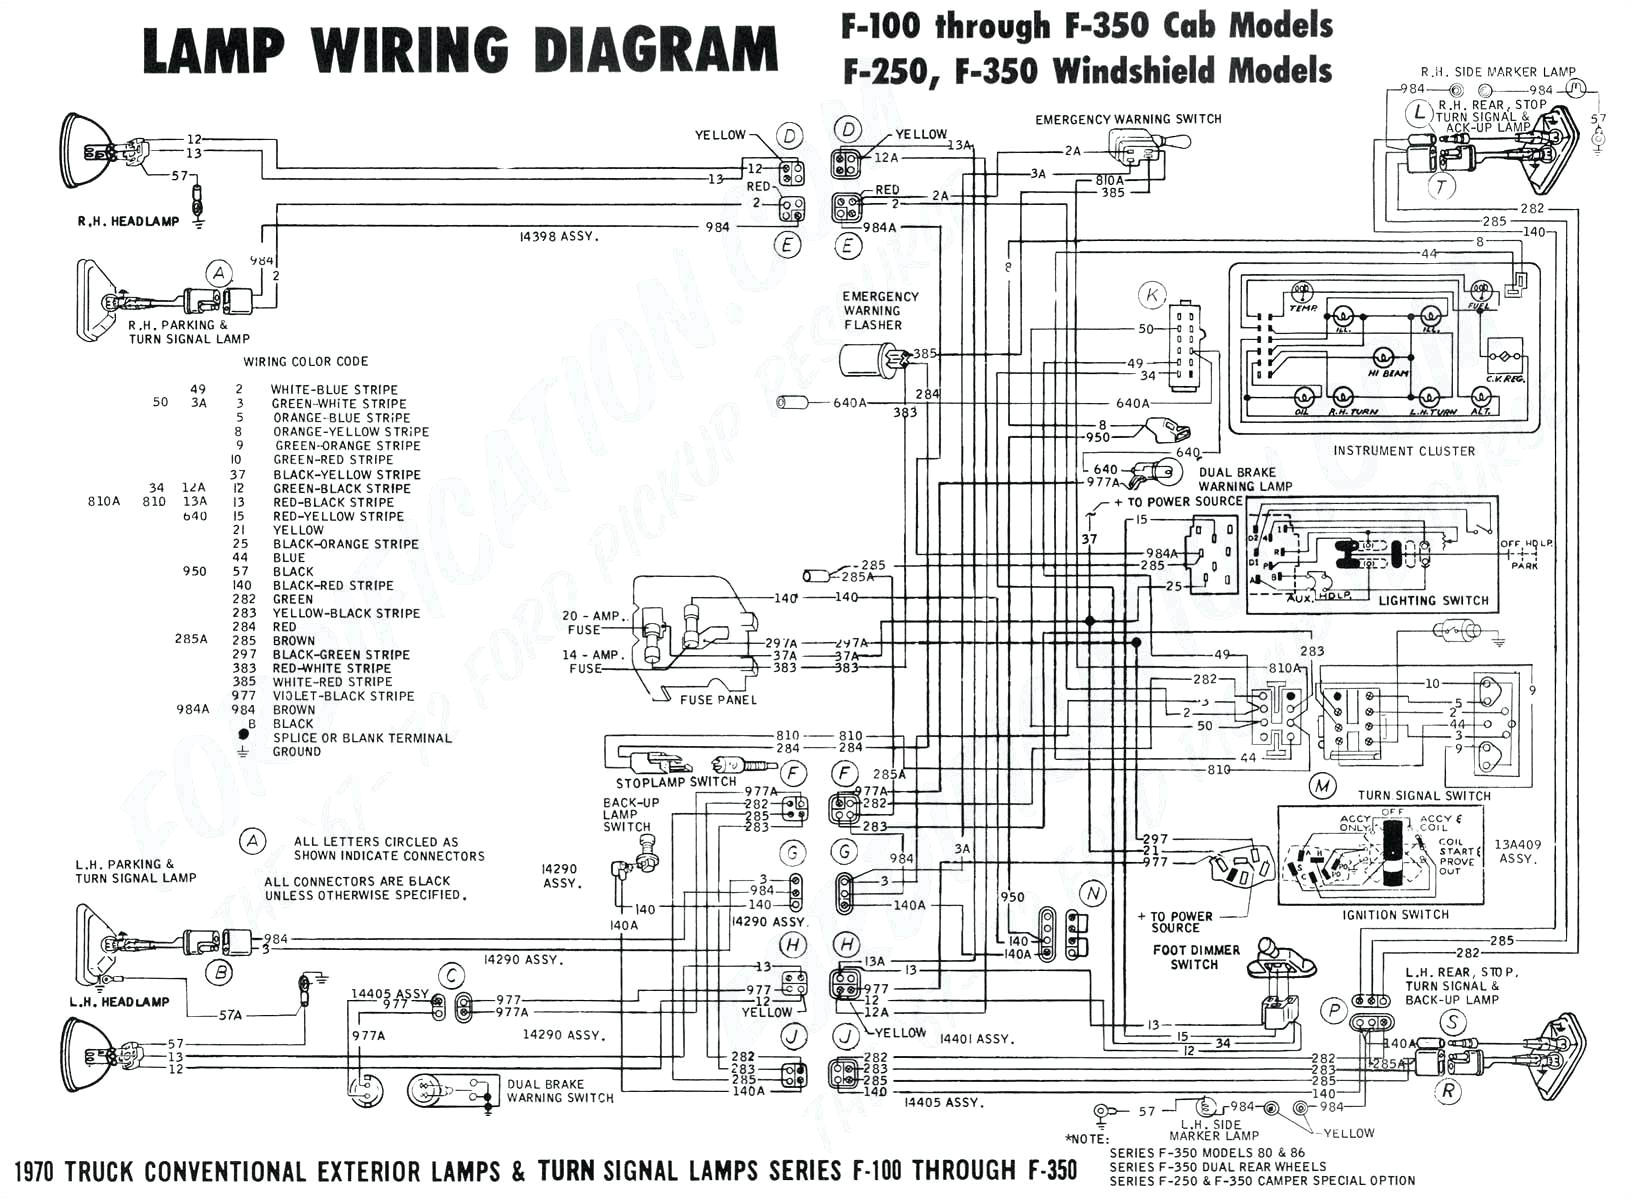 haynes wiring diagrams fresh horse trailer wiring diagram inspirational small utility trailer jpg